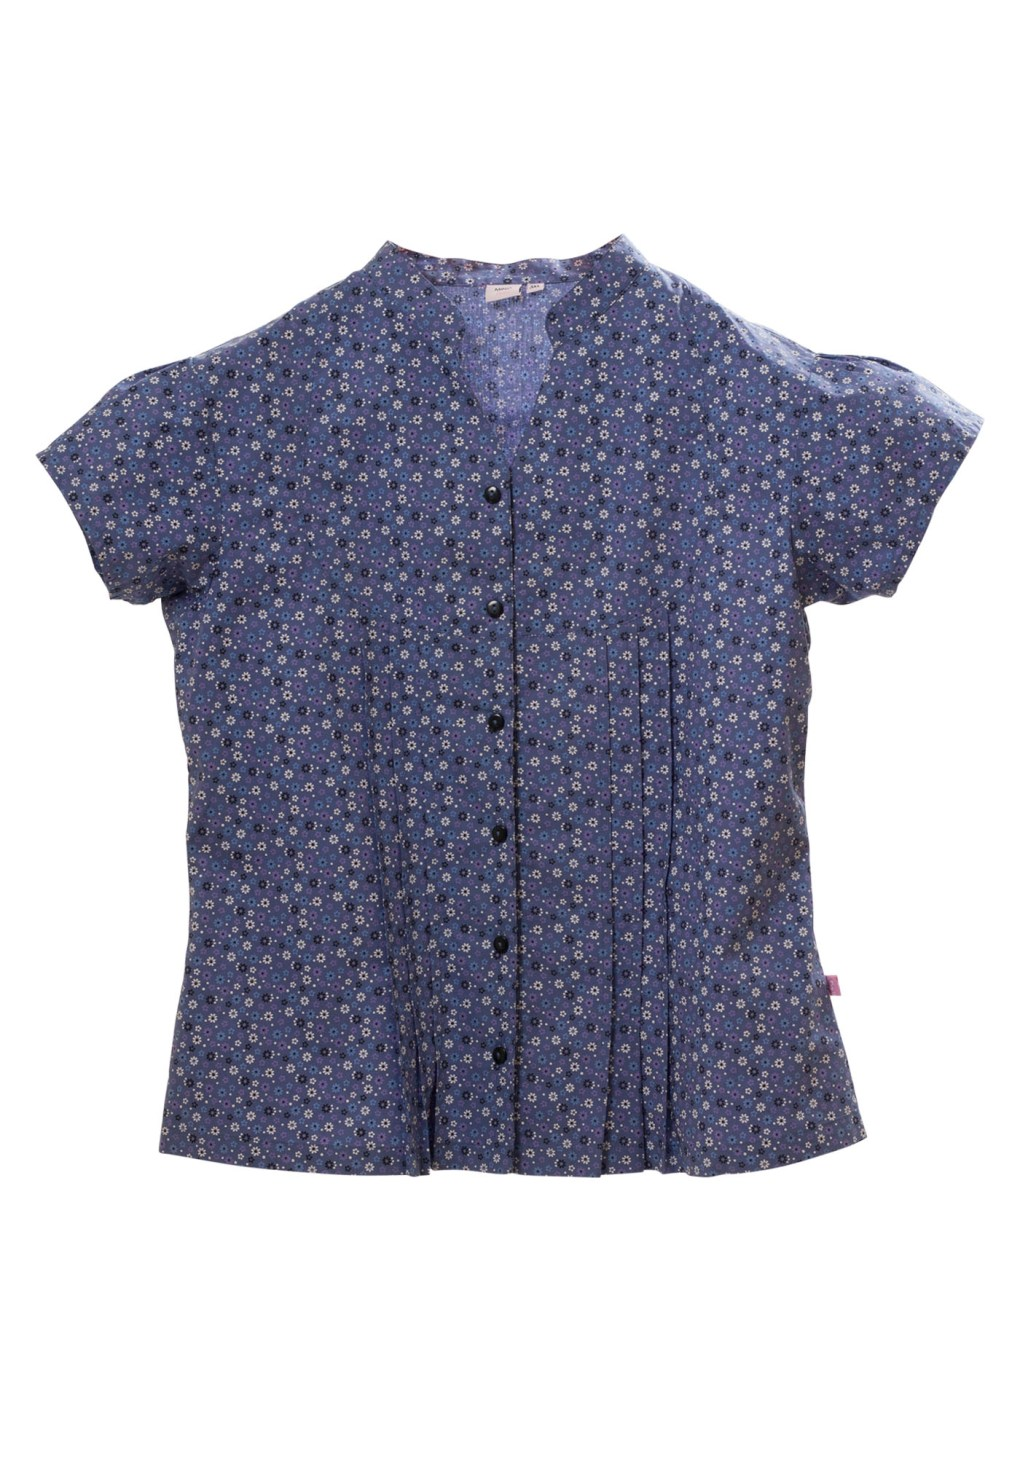 MINC Petite Girls Pleated Shirt in Blue Floral Printed Cotton